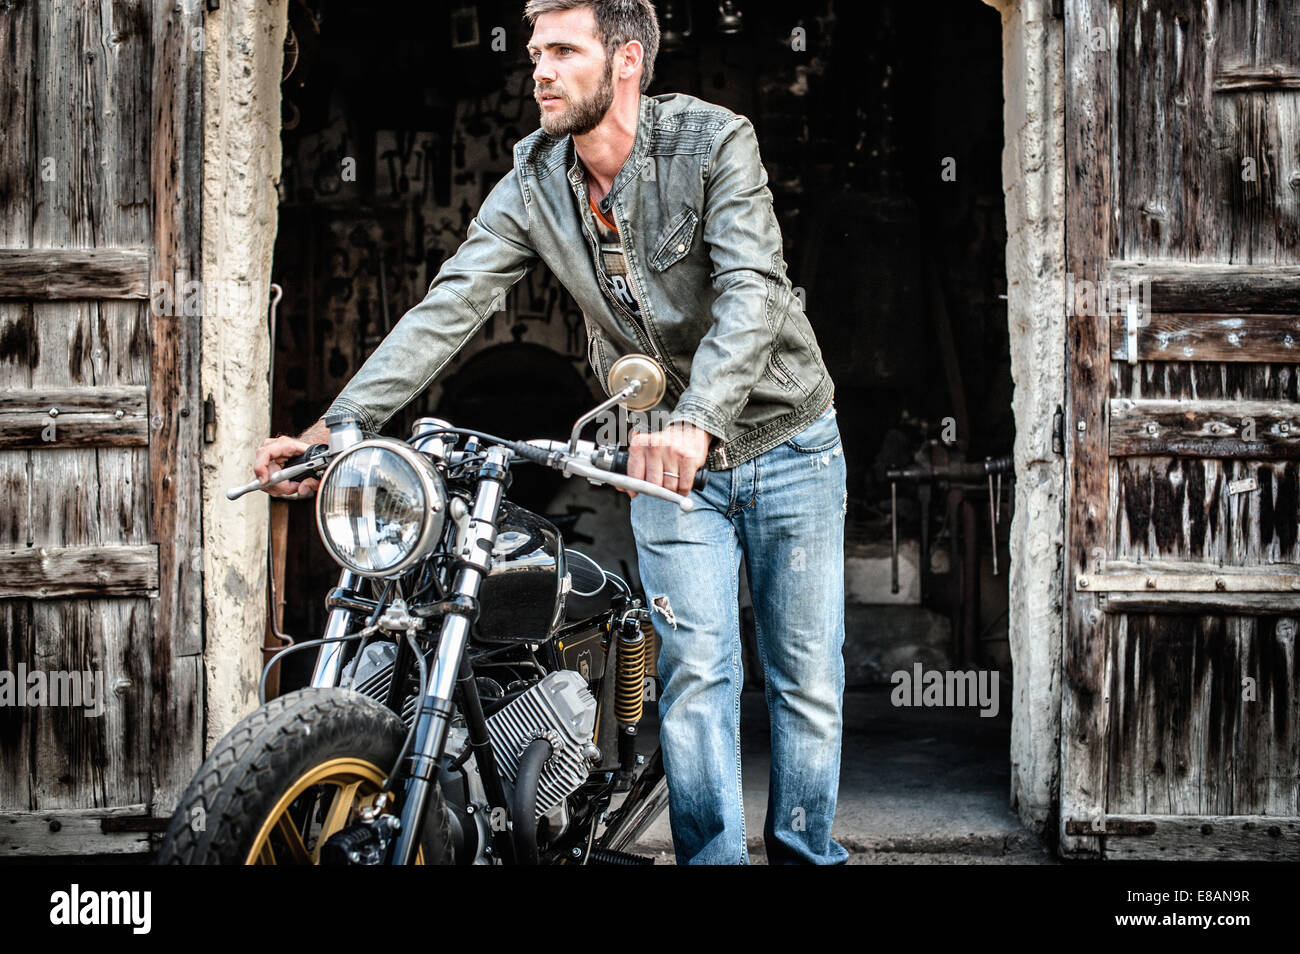 Mid adult man pushing motorcycle out of barn - Stock Image